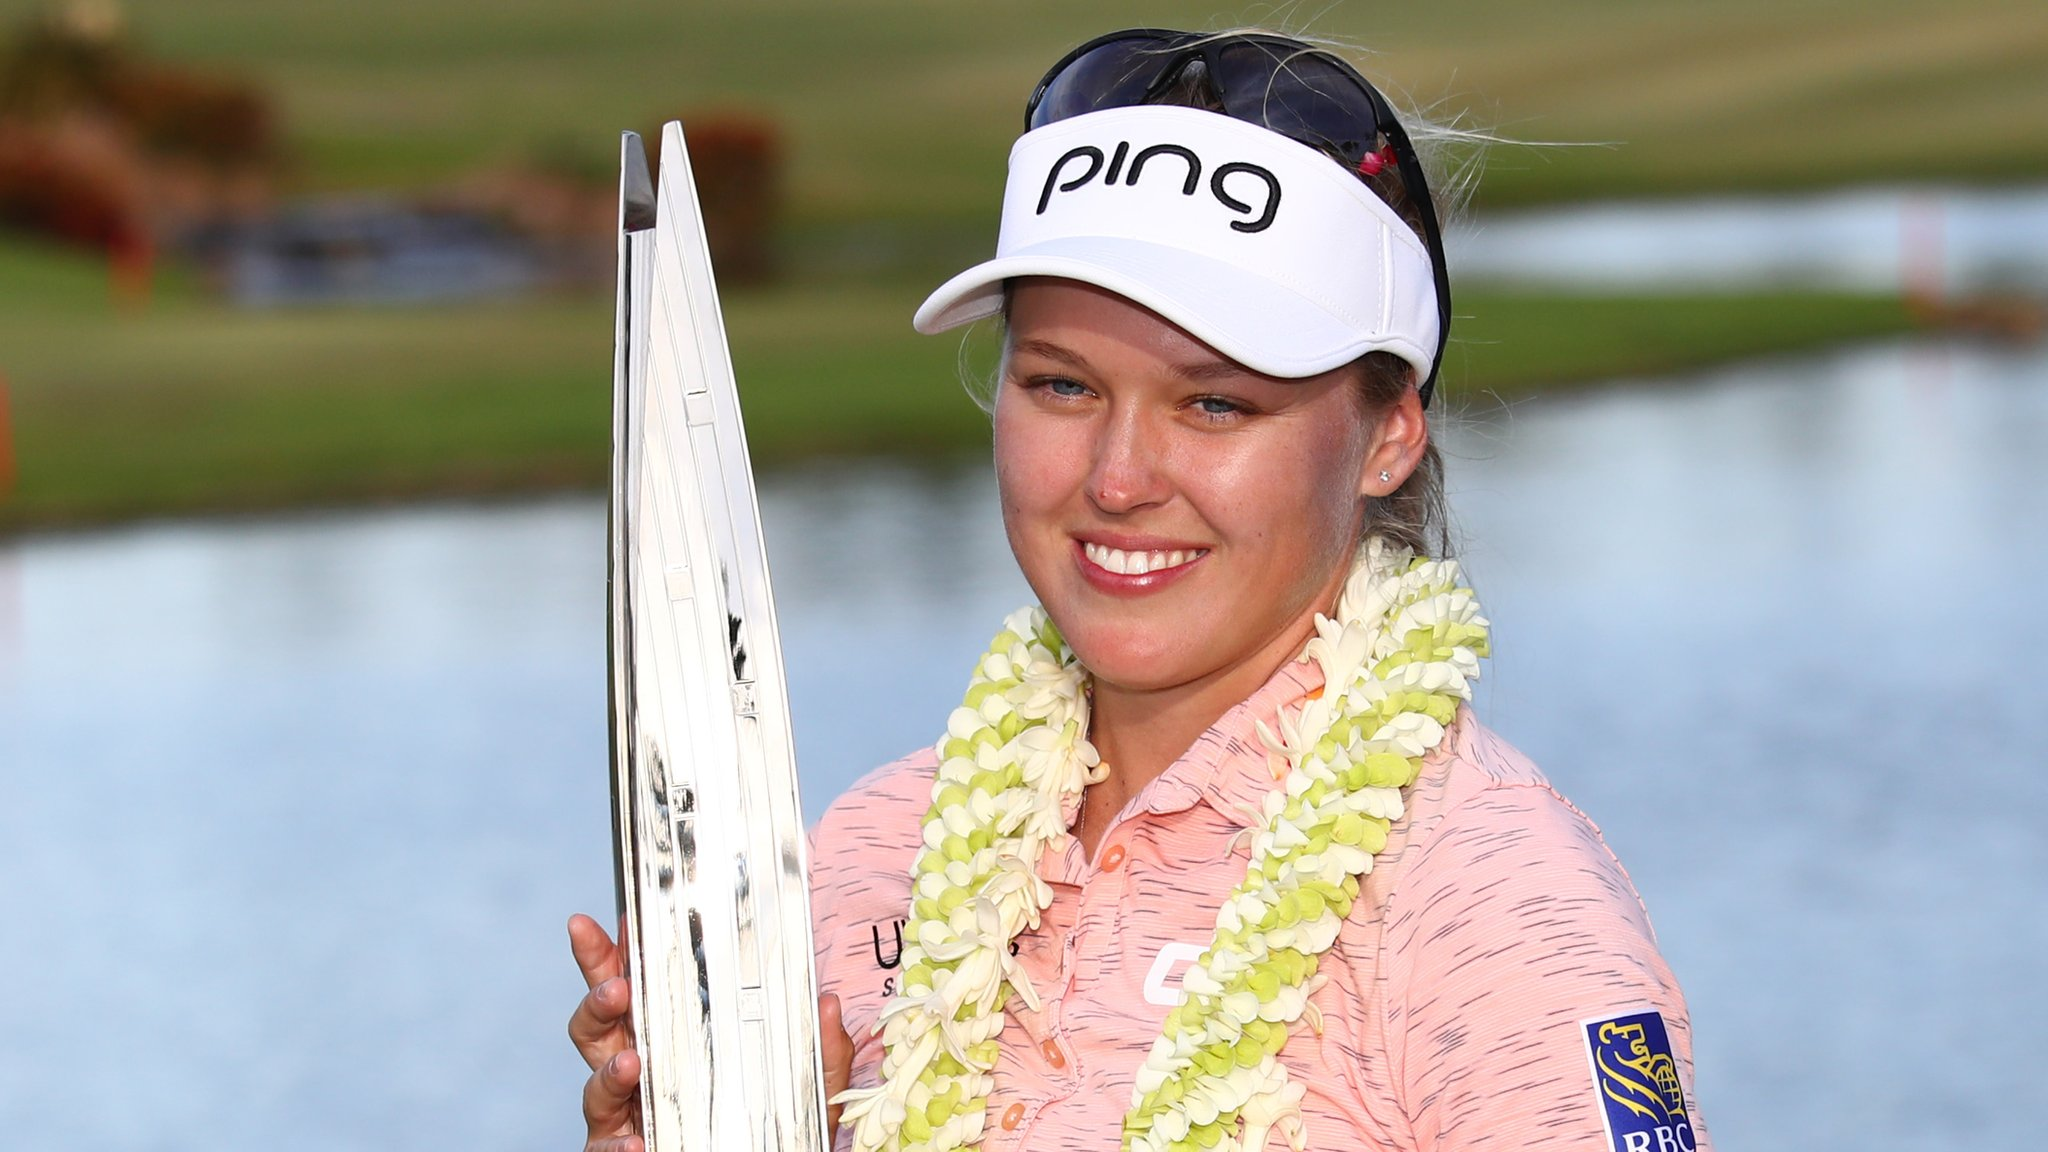 Lotte Championship: Brooke Henderson defends title to tie Canadian record